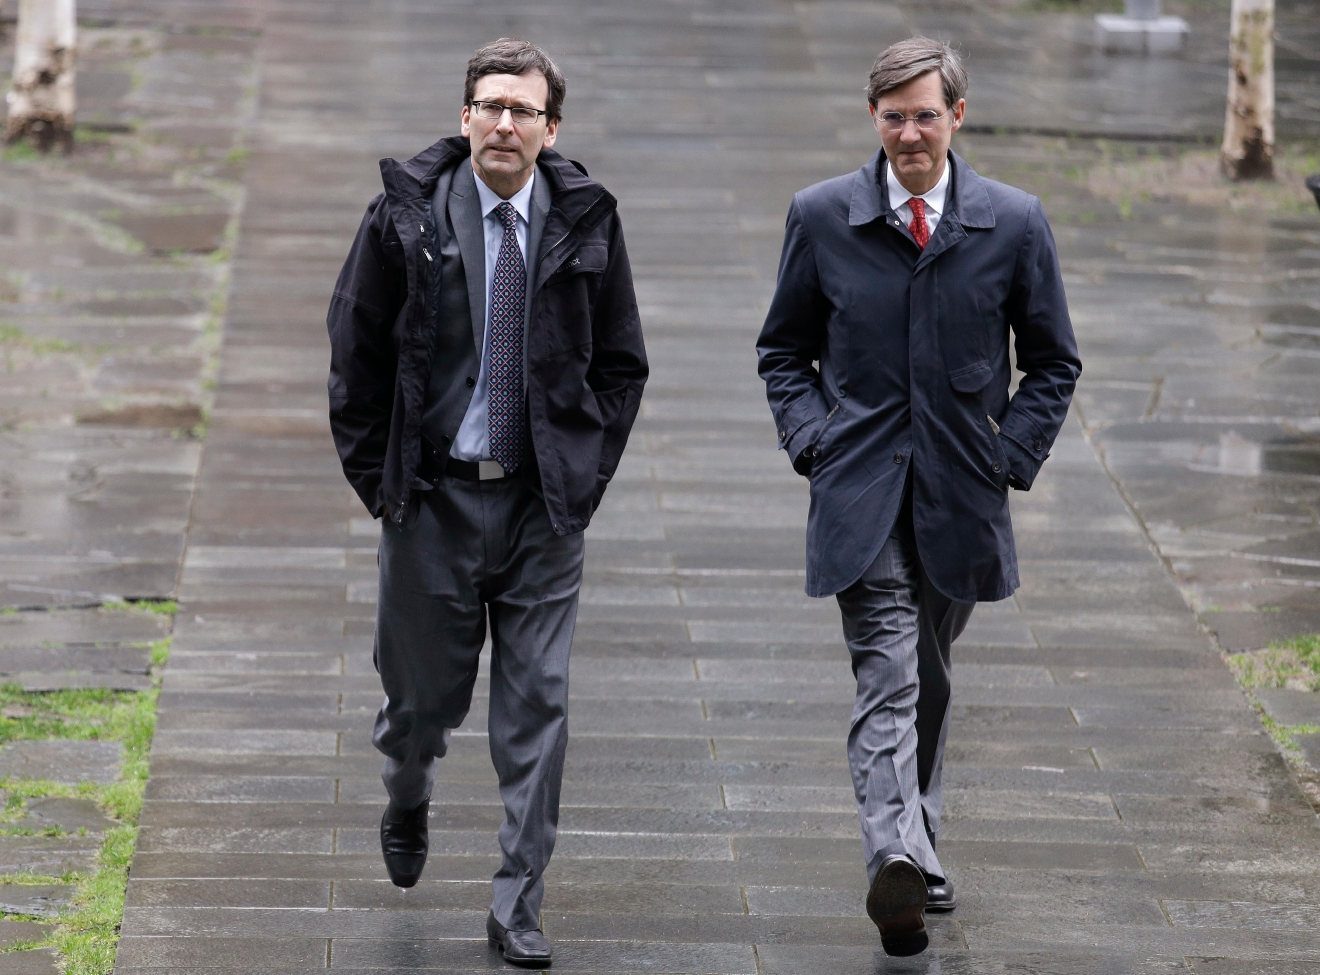 Attorney General Bob Ferguson, left, arrives at the federal courthouse with spokesman Peter Lavallee before an immigration hearing Wednesday, March 15, 2017, in Seattle. Washington state has filed a backup motion in an effort to keep President Donald Trump's revised travel ban from taking effect as scheduled Thursday. In a new court filing Wednesday, Ferguson said the state supports the arguments made in a related case filed by an immigrant rights group based in Seattle that alleges the ban discriminates against Muslims and violates federal immigration law. (AP Photo/Elaine Thompson)